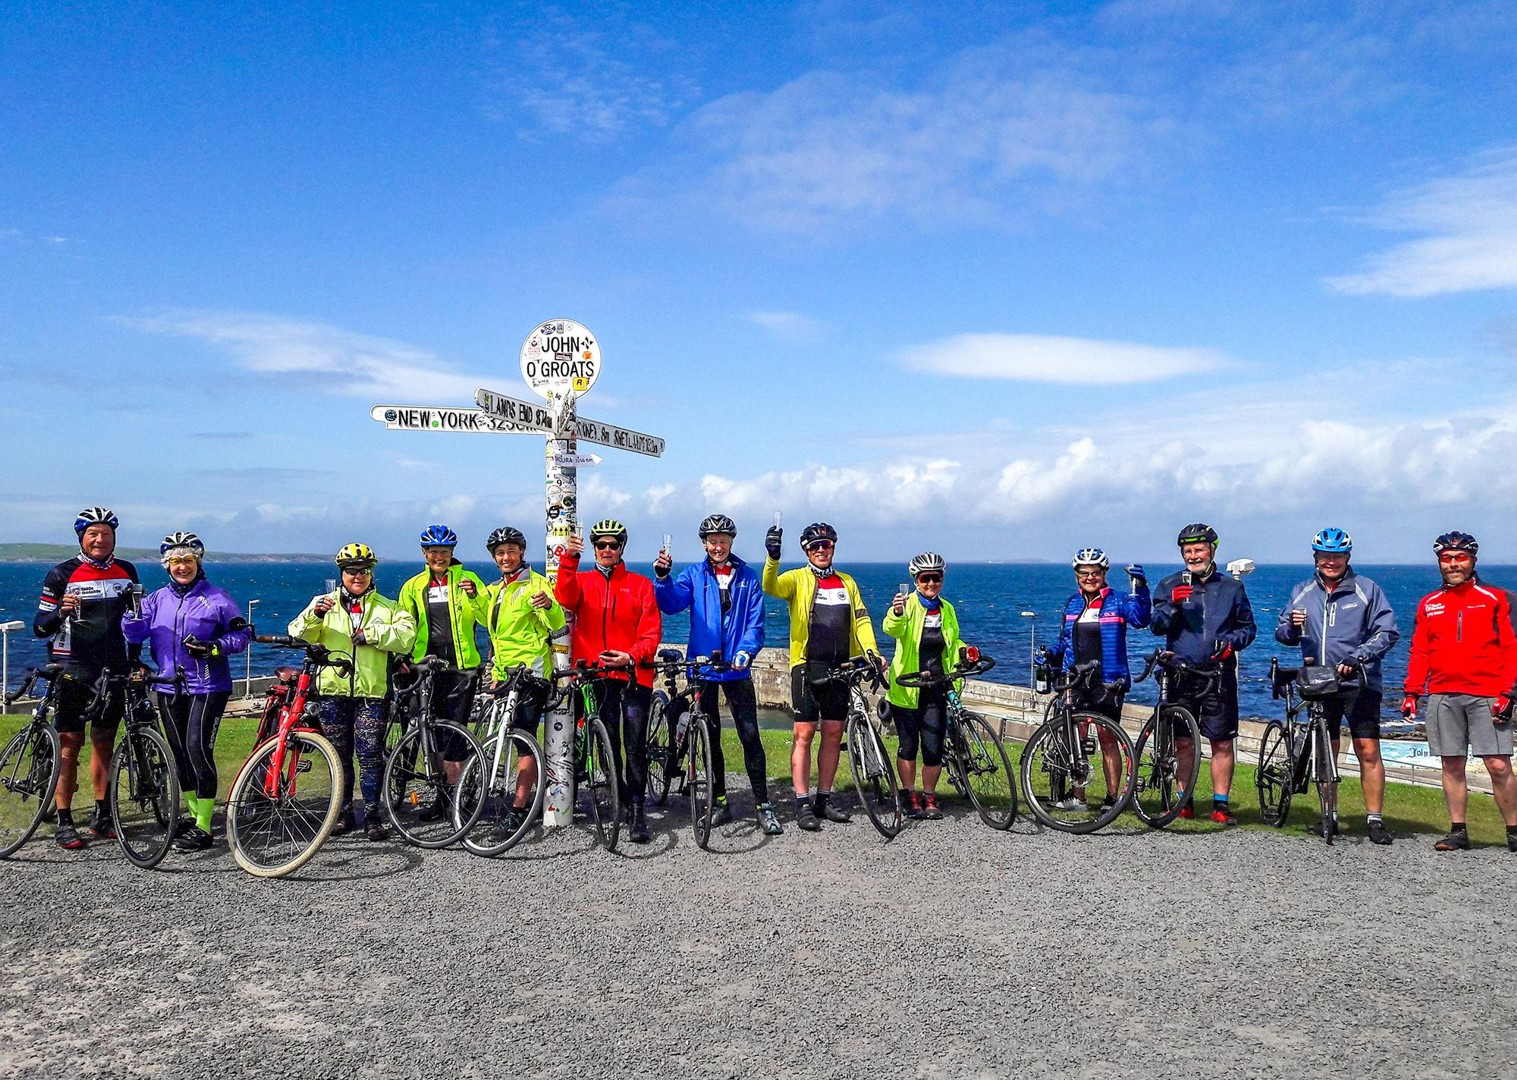 saddle-skedaddle-lands-end-to-john-ogroats-22-day-guided-cycling-holiday.jpg - UK - Land's End to John O'Groats Explorer (22 days) - Guided Cycling Holiday - Leisure Cycling